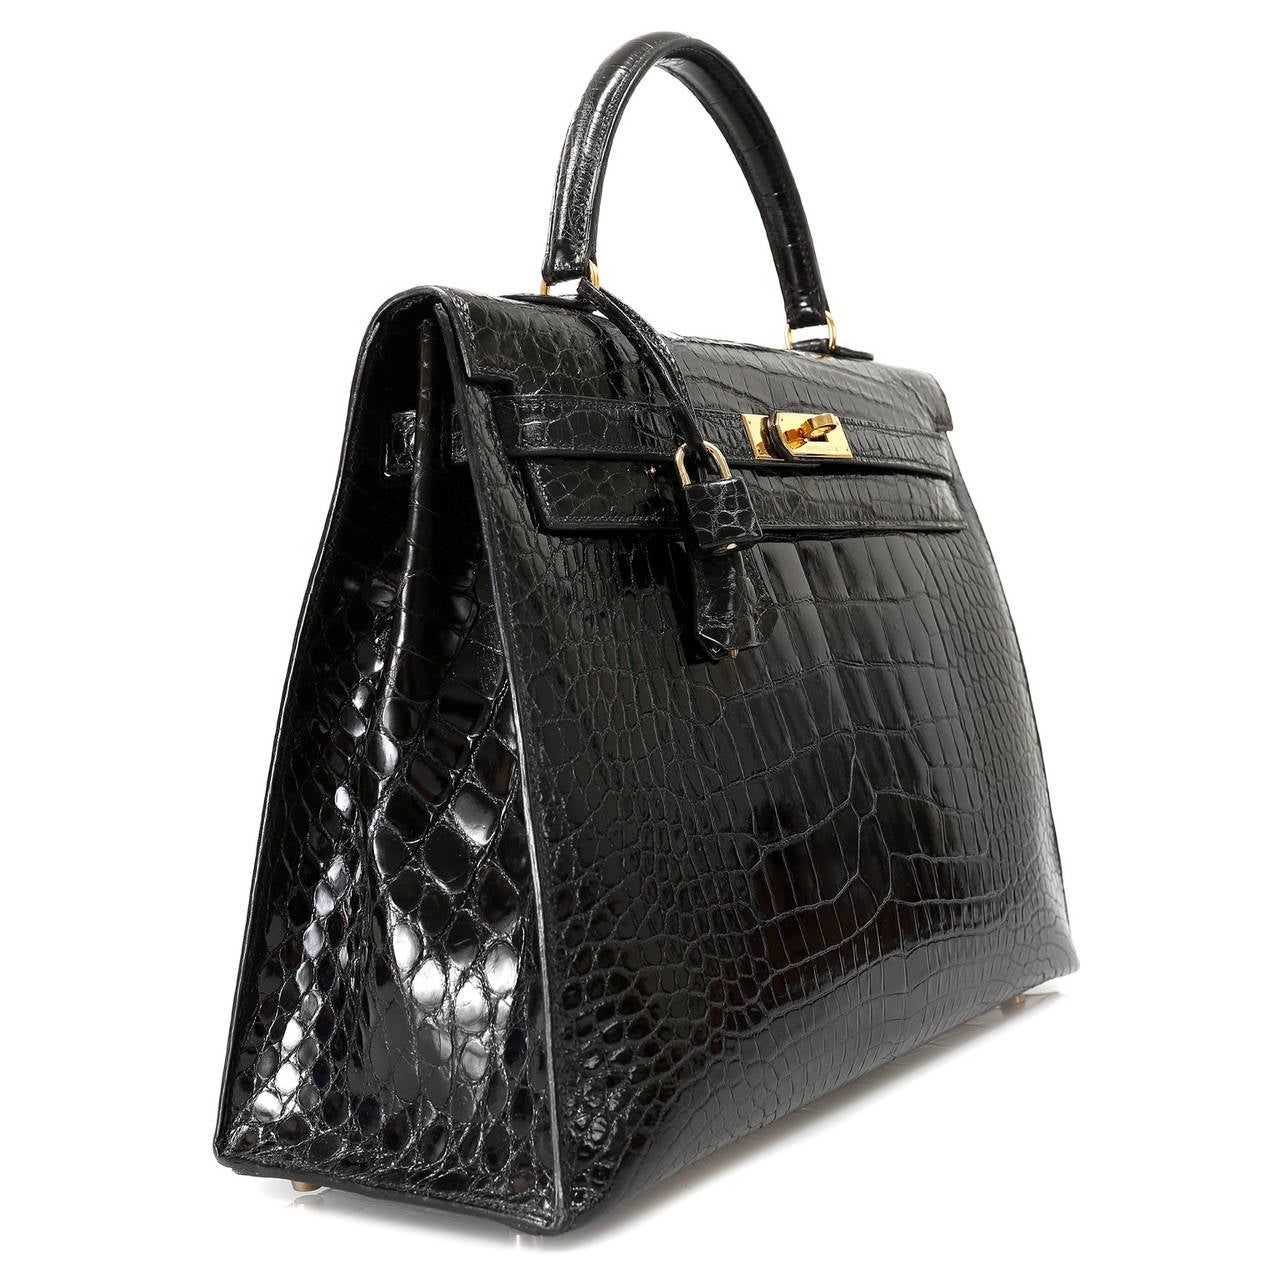 Hermes Black Alligator Kelly Bag- 35cm with Gold For Sale at 1stdibs